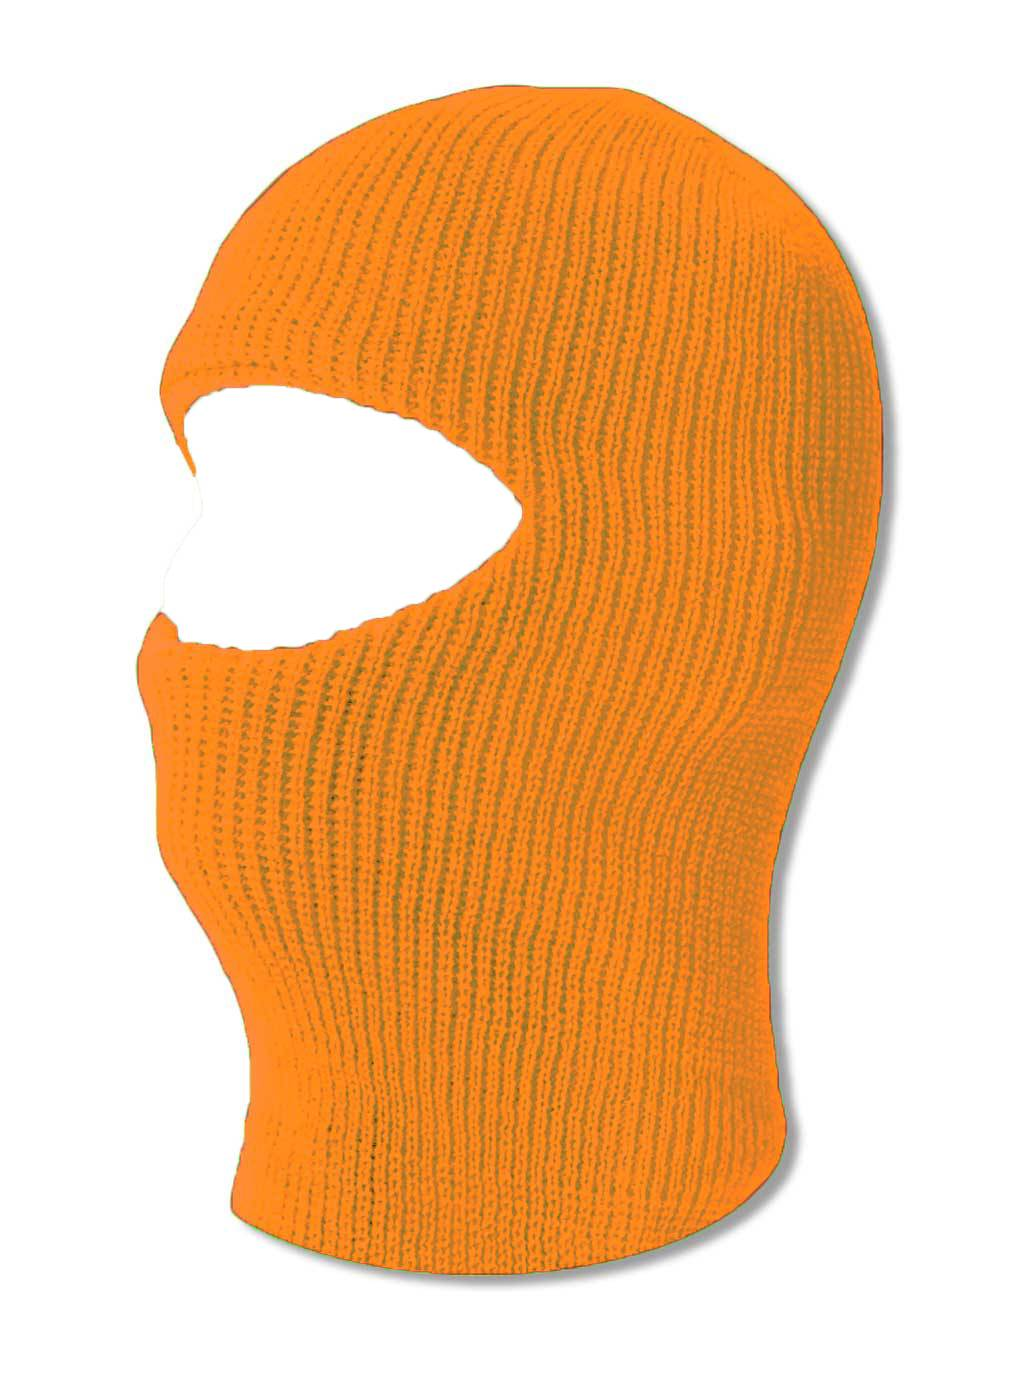 TopHeadwear One 1 Hole Ski Mask Neon Orange by TOP HEADWEAR